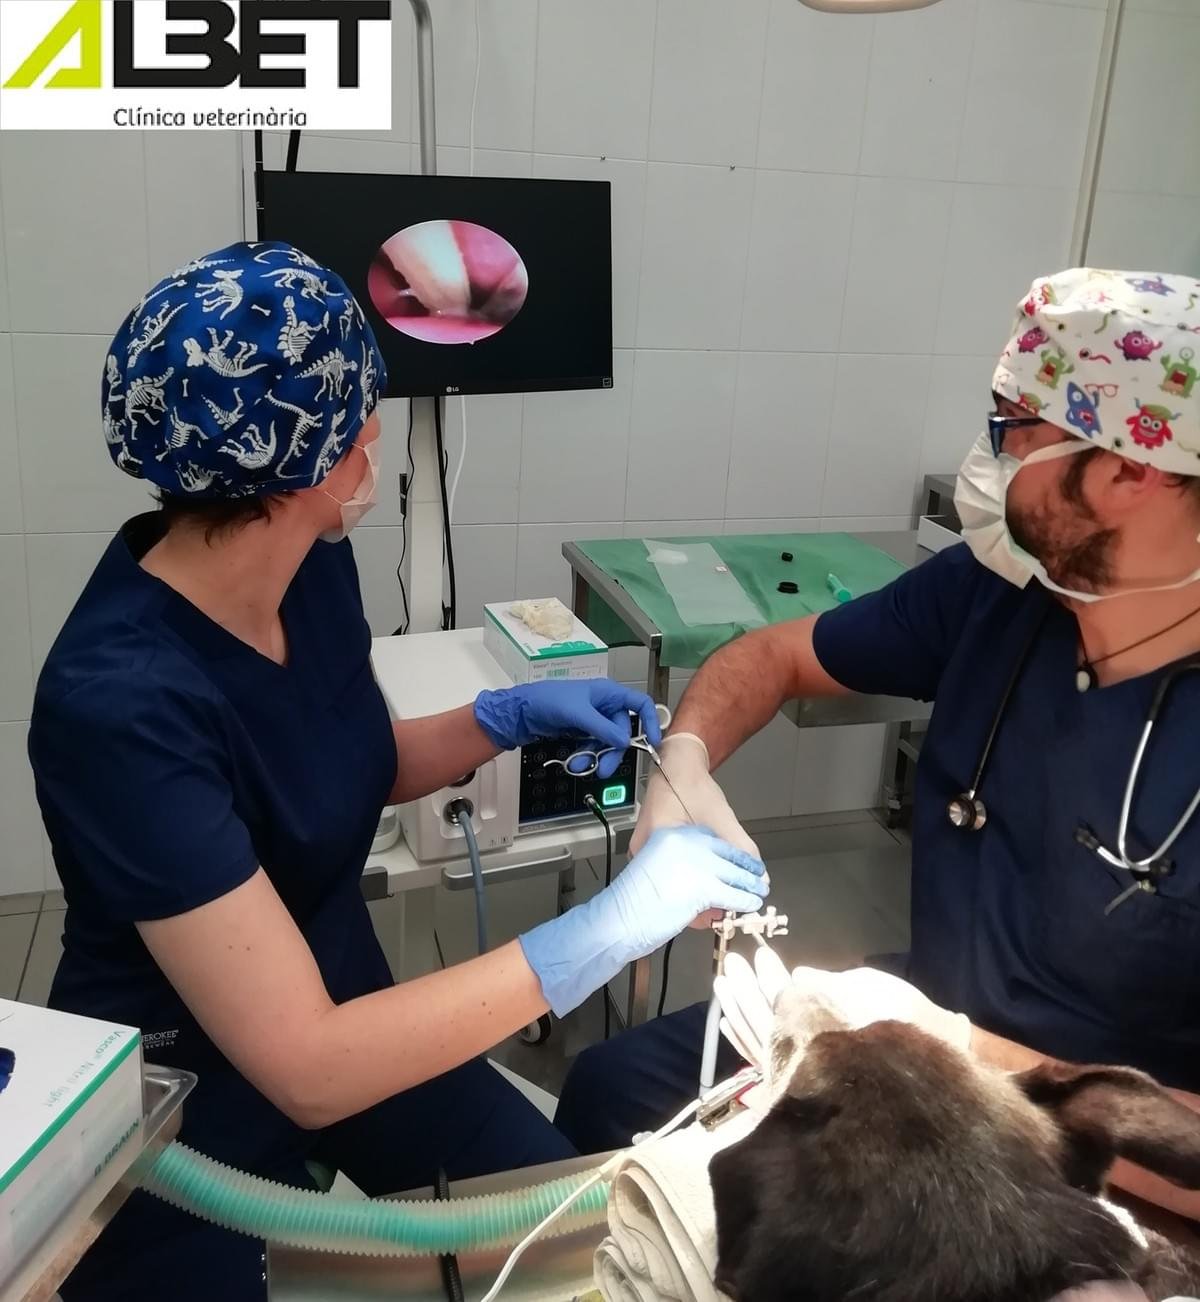 Endoscopio en Clinica veterinaria Albet, Vic